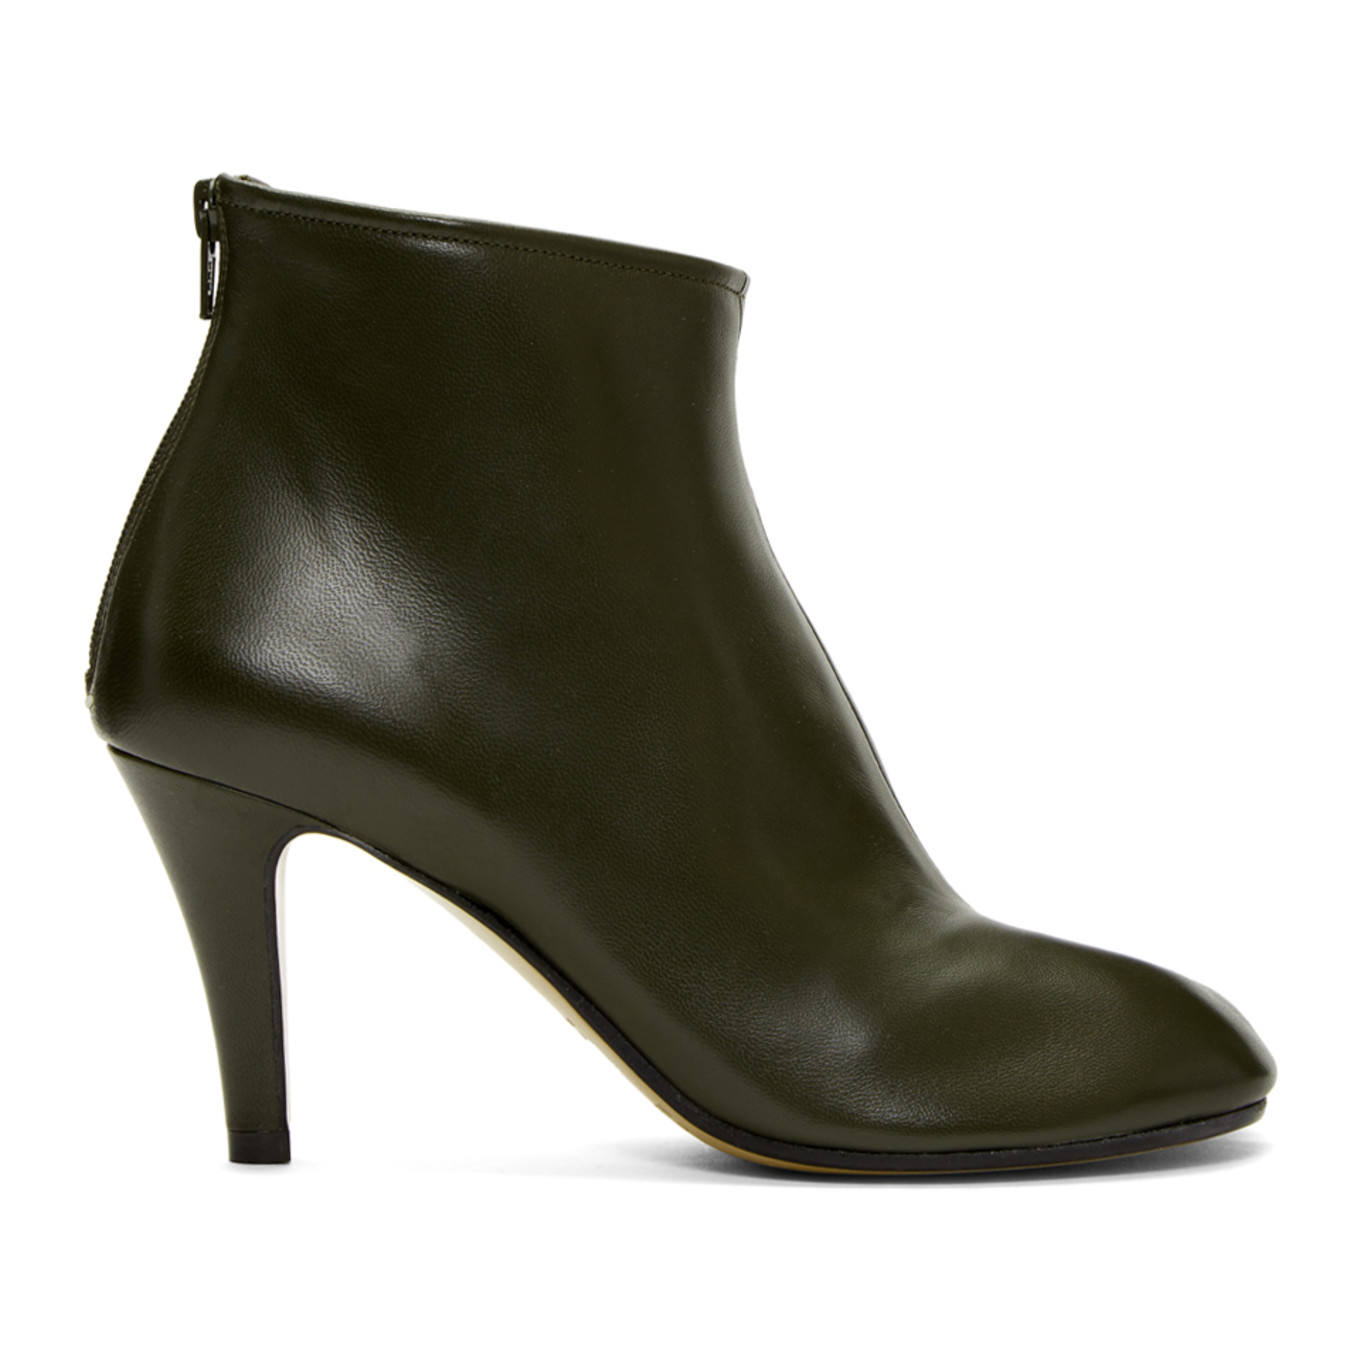 Ssense Exclusive Green Stiletto Tabi Boots by Maison Margiela